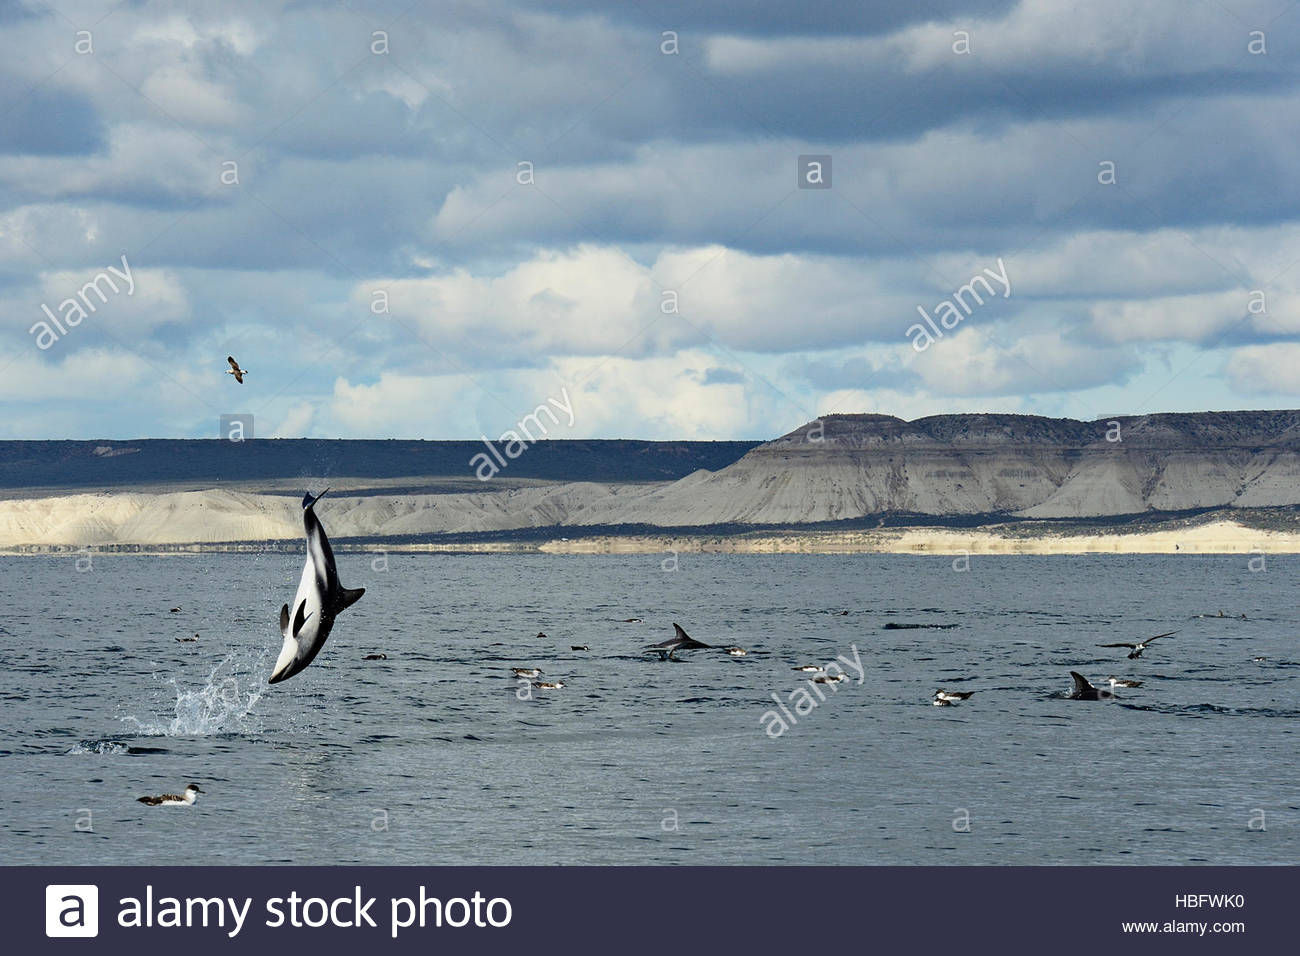 A dusky dolphin catapulting through the air off the coast of Patagonia may be sending a signal to other dolphins. - Stock Image